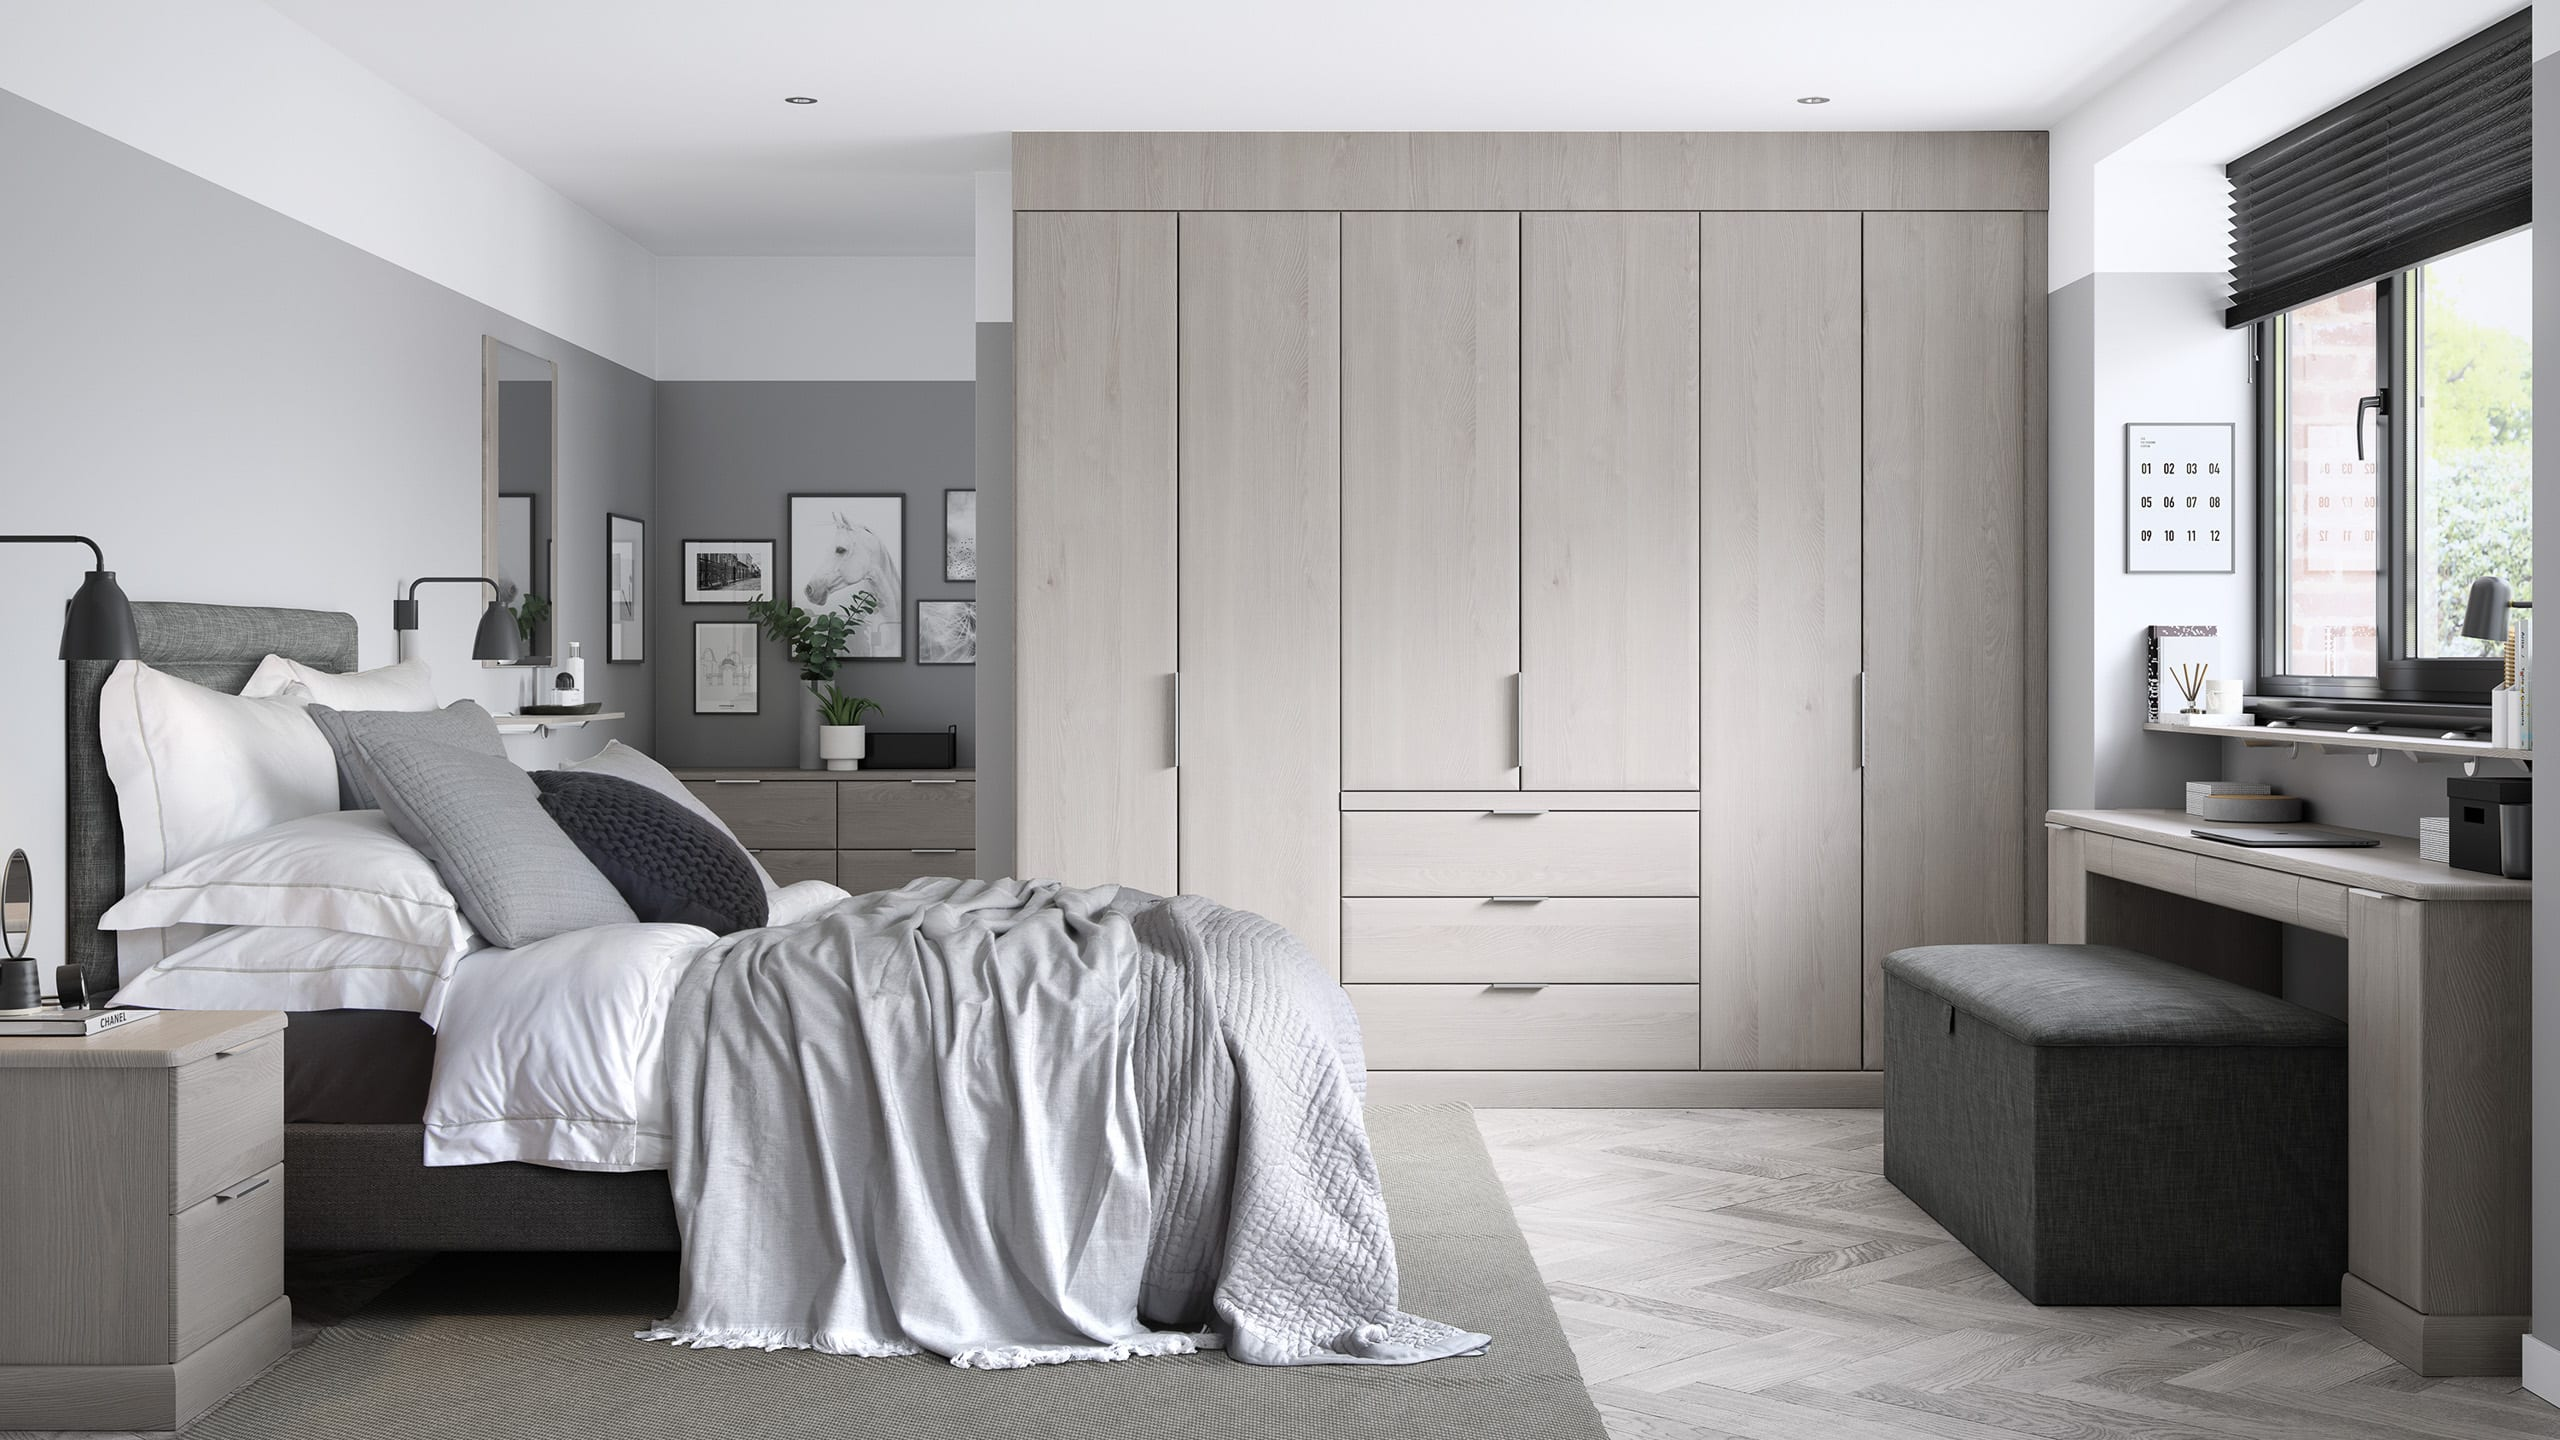 Sienna Rural Oak - fitted bedroom from Ashford Kitchens and Interiors Ltd.